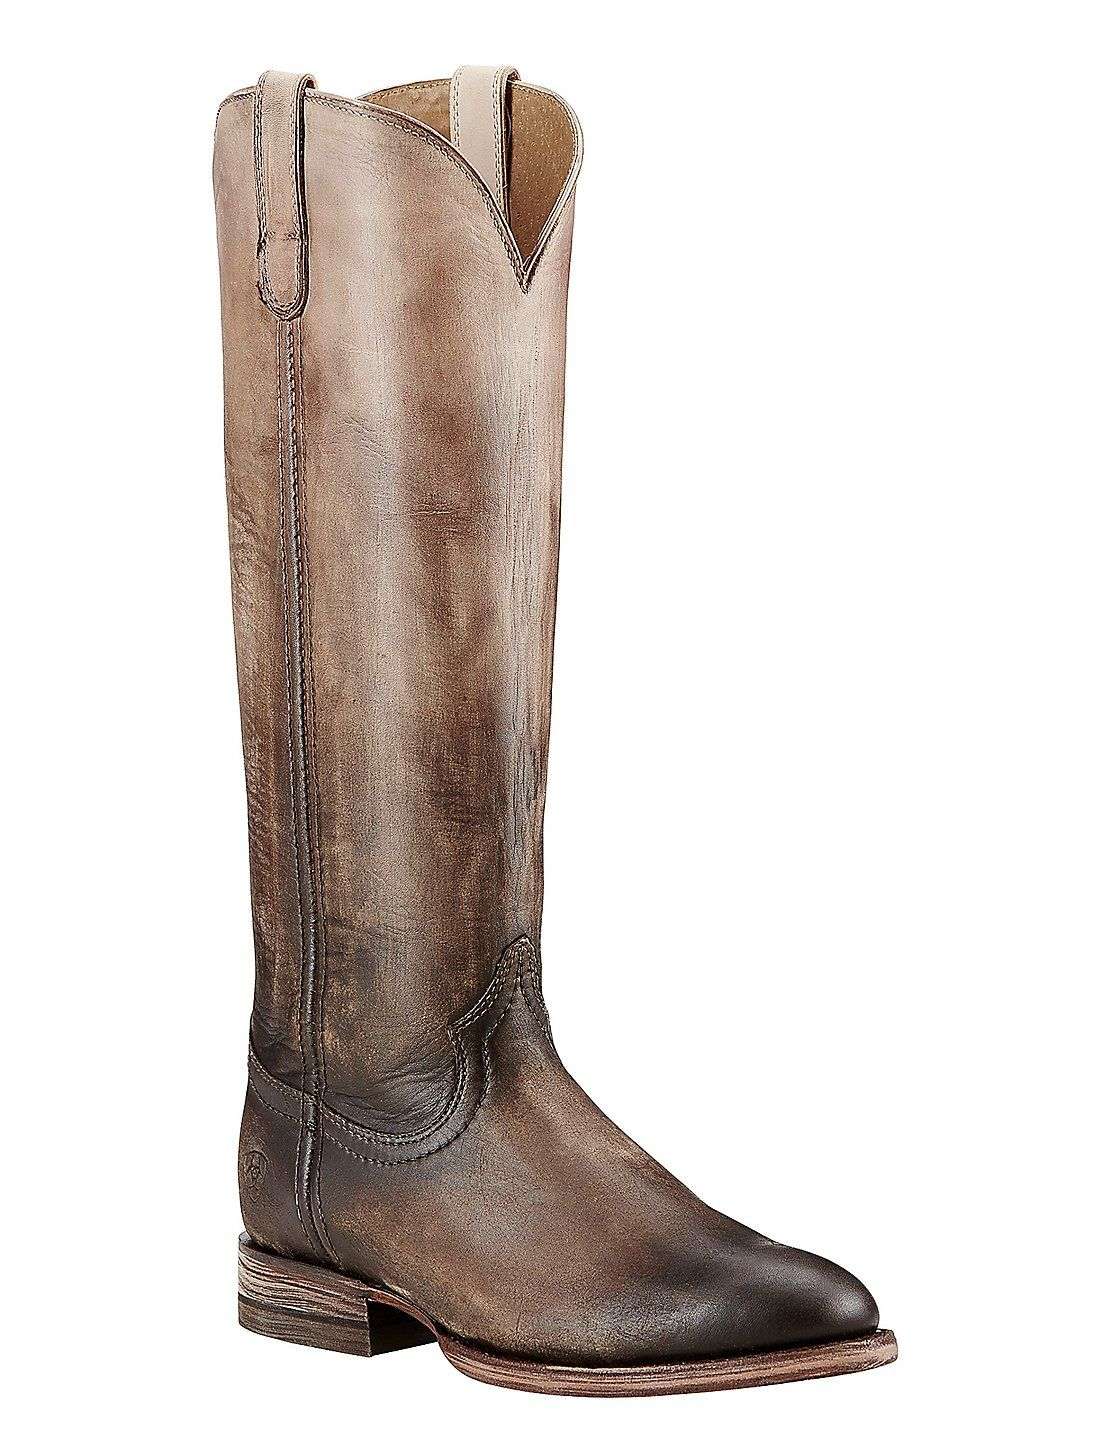 Ariat Women's Cream and Chocolate Ombre Round Toe Fashion